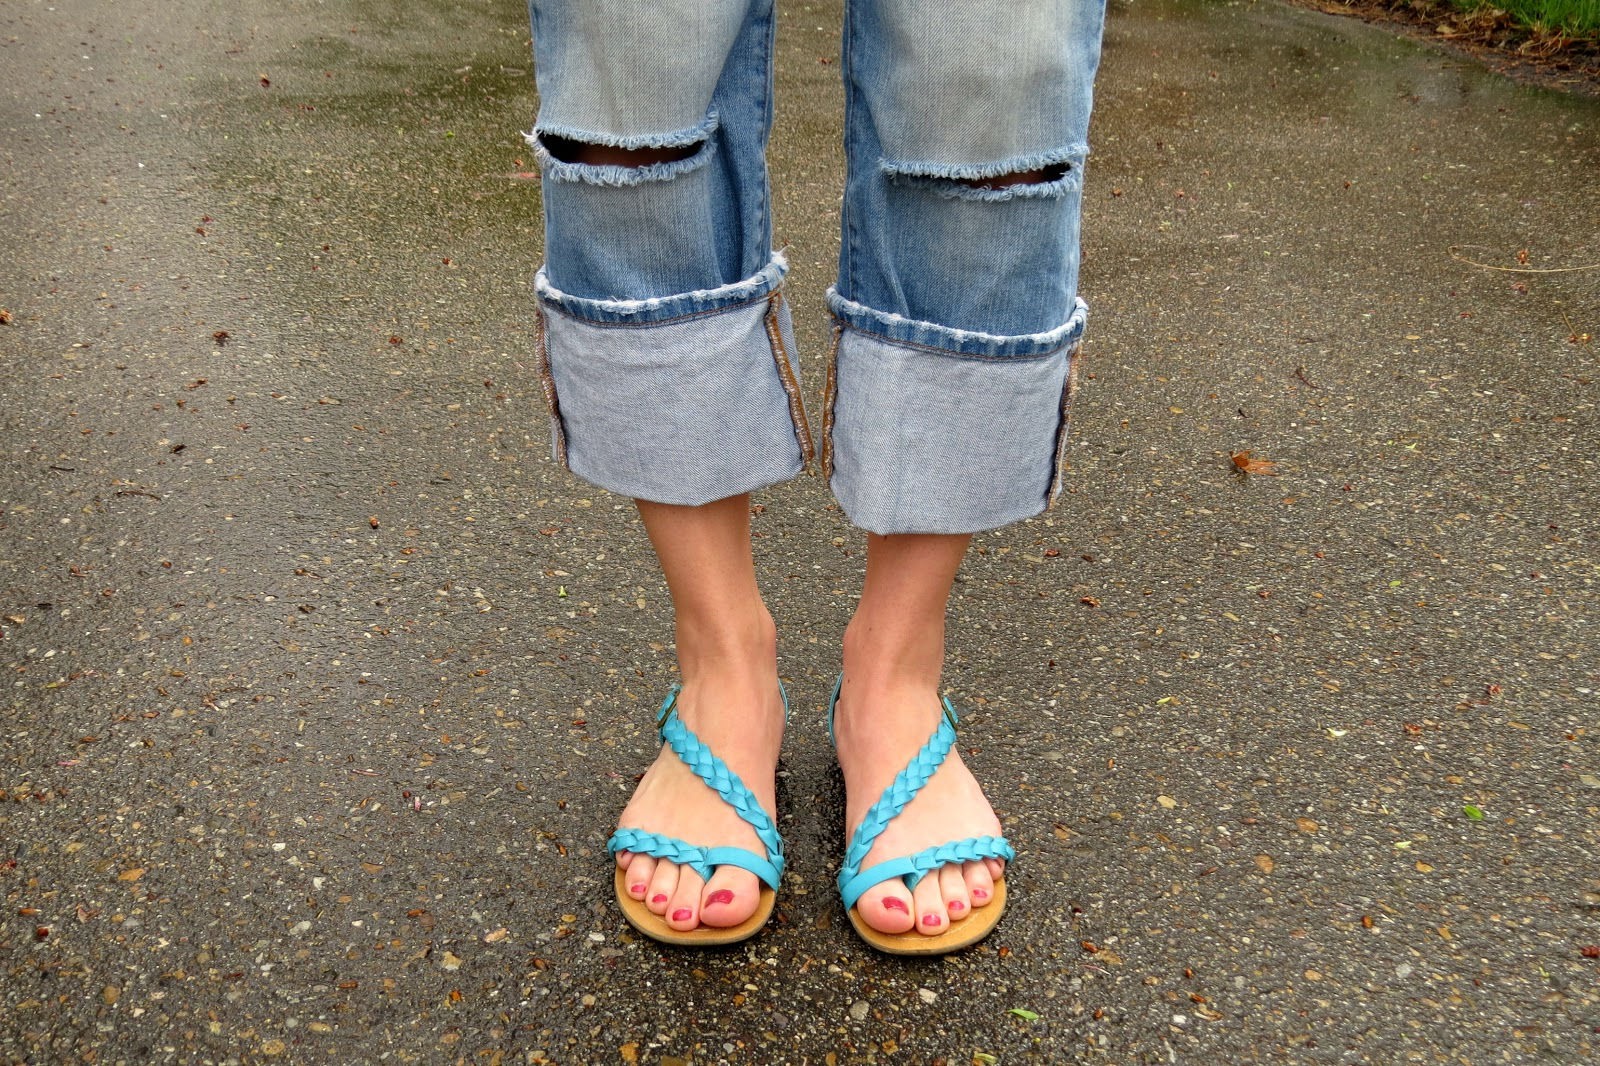 ripped jeans and bright sandals